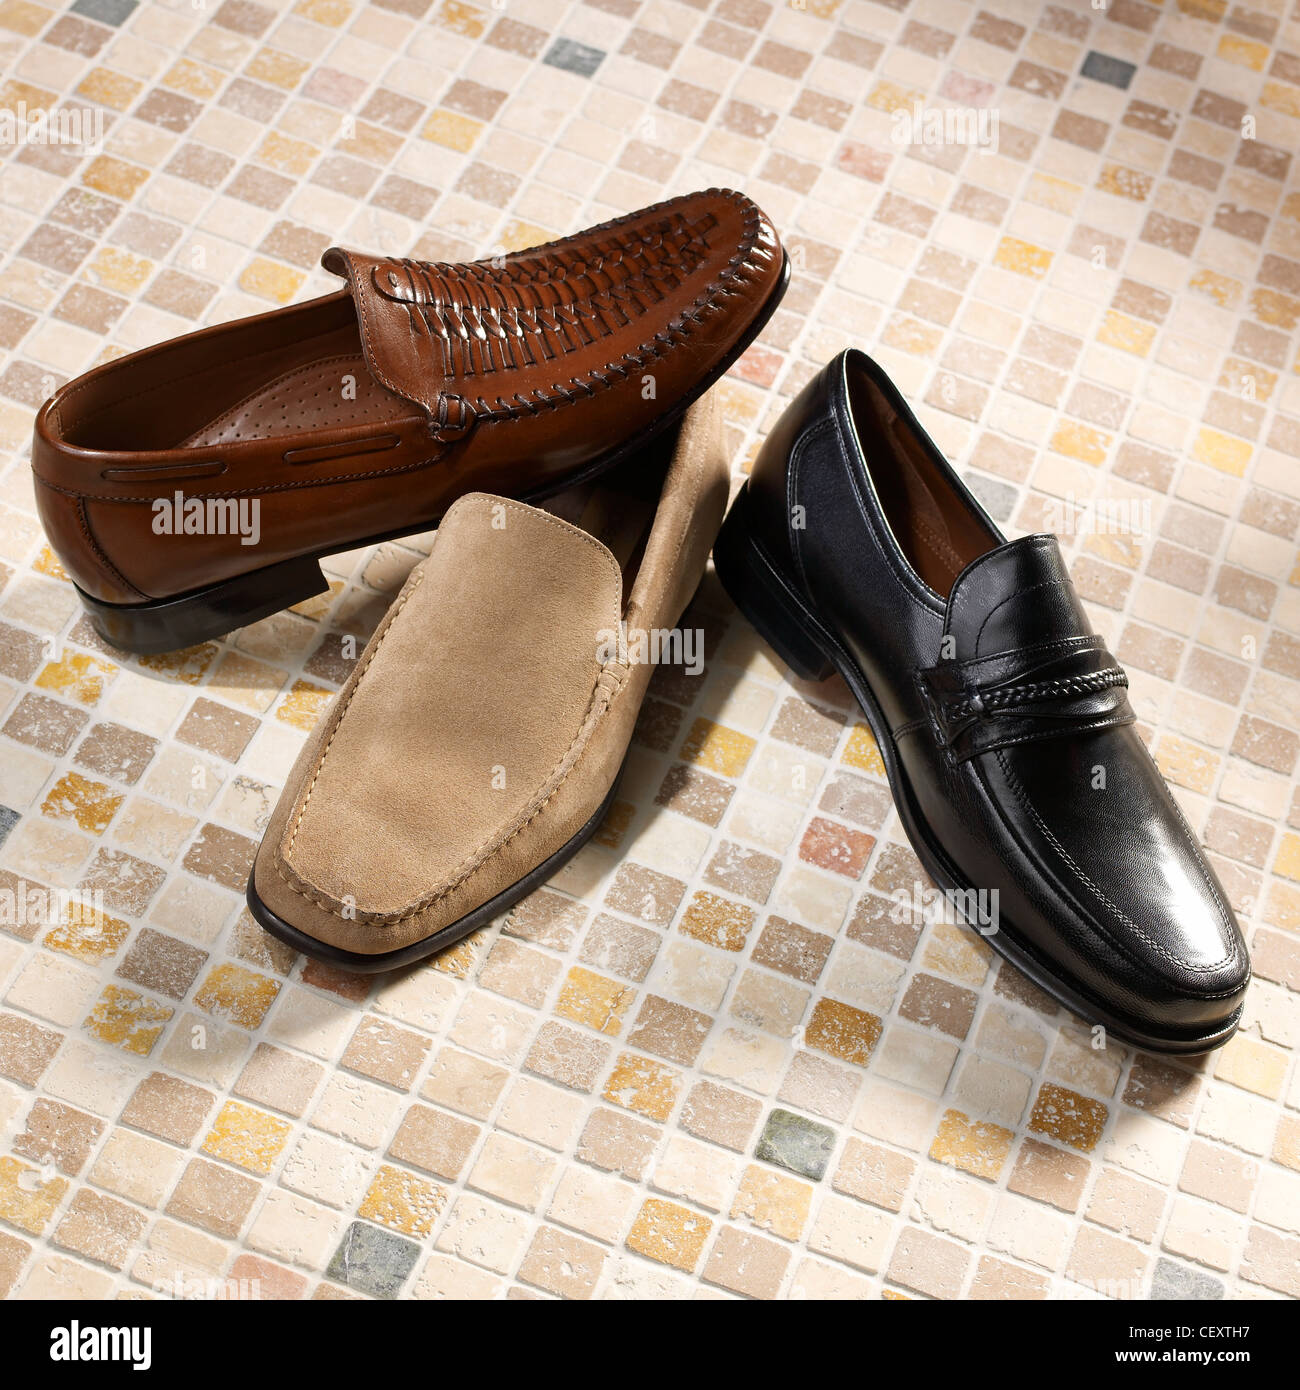 A still life shot of a three mens shoes on a mosiac floor - Stock Image